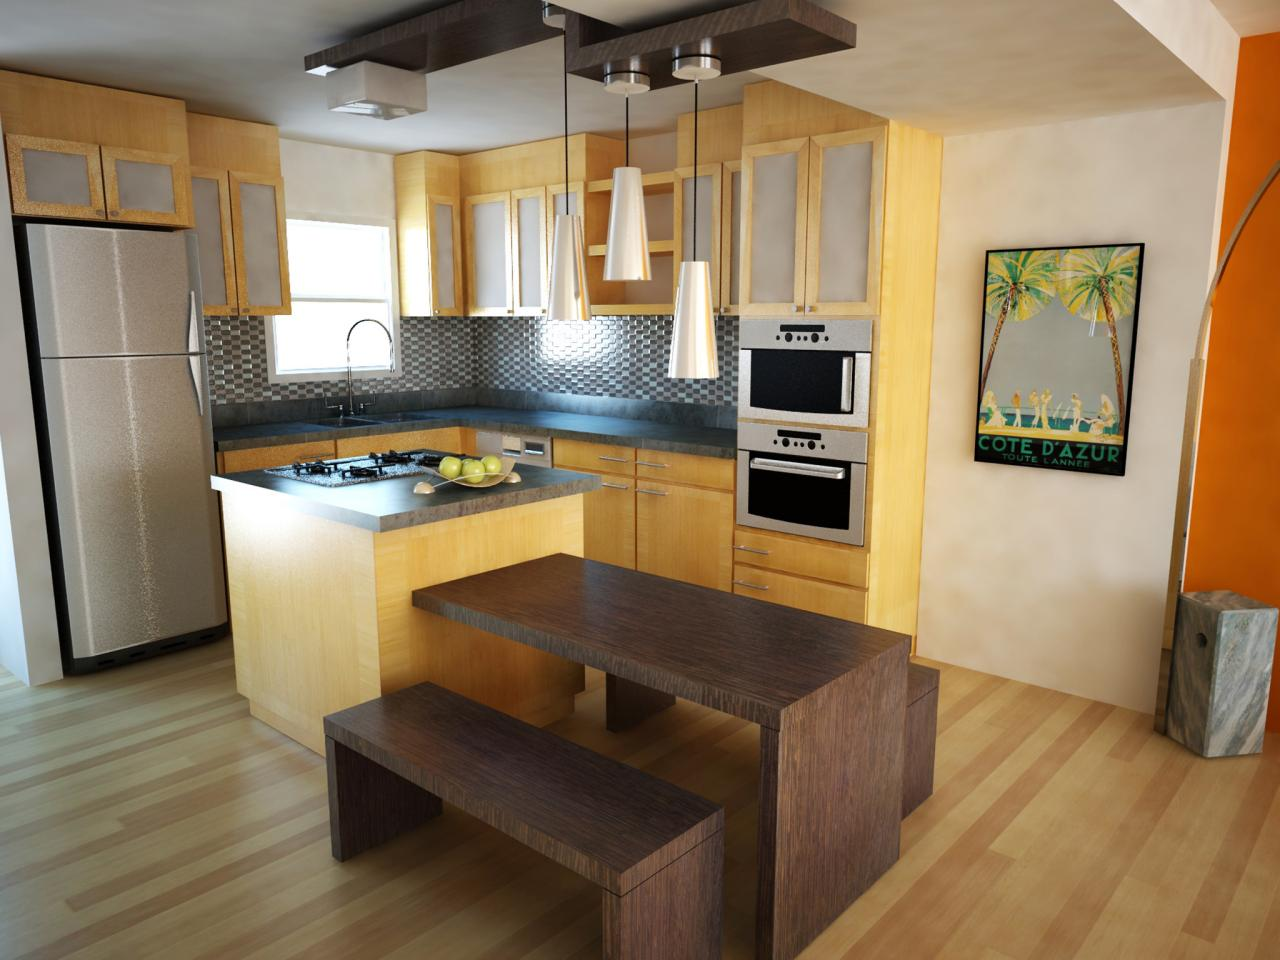 Choose Small Kitchen Island and Additional Oak Table near Benches for Open Kitchen Area